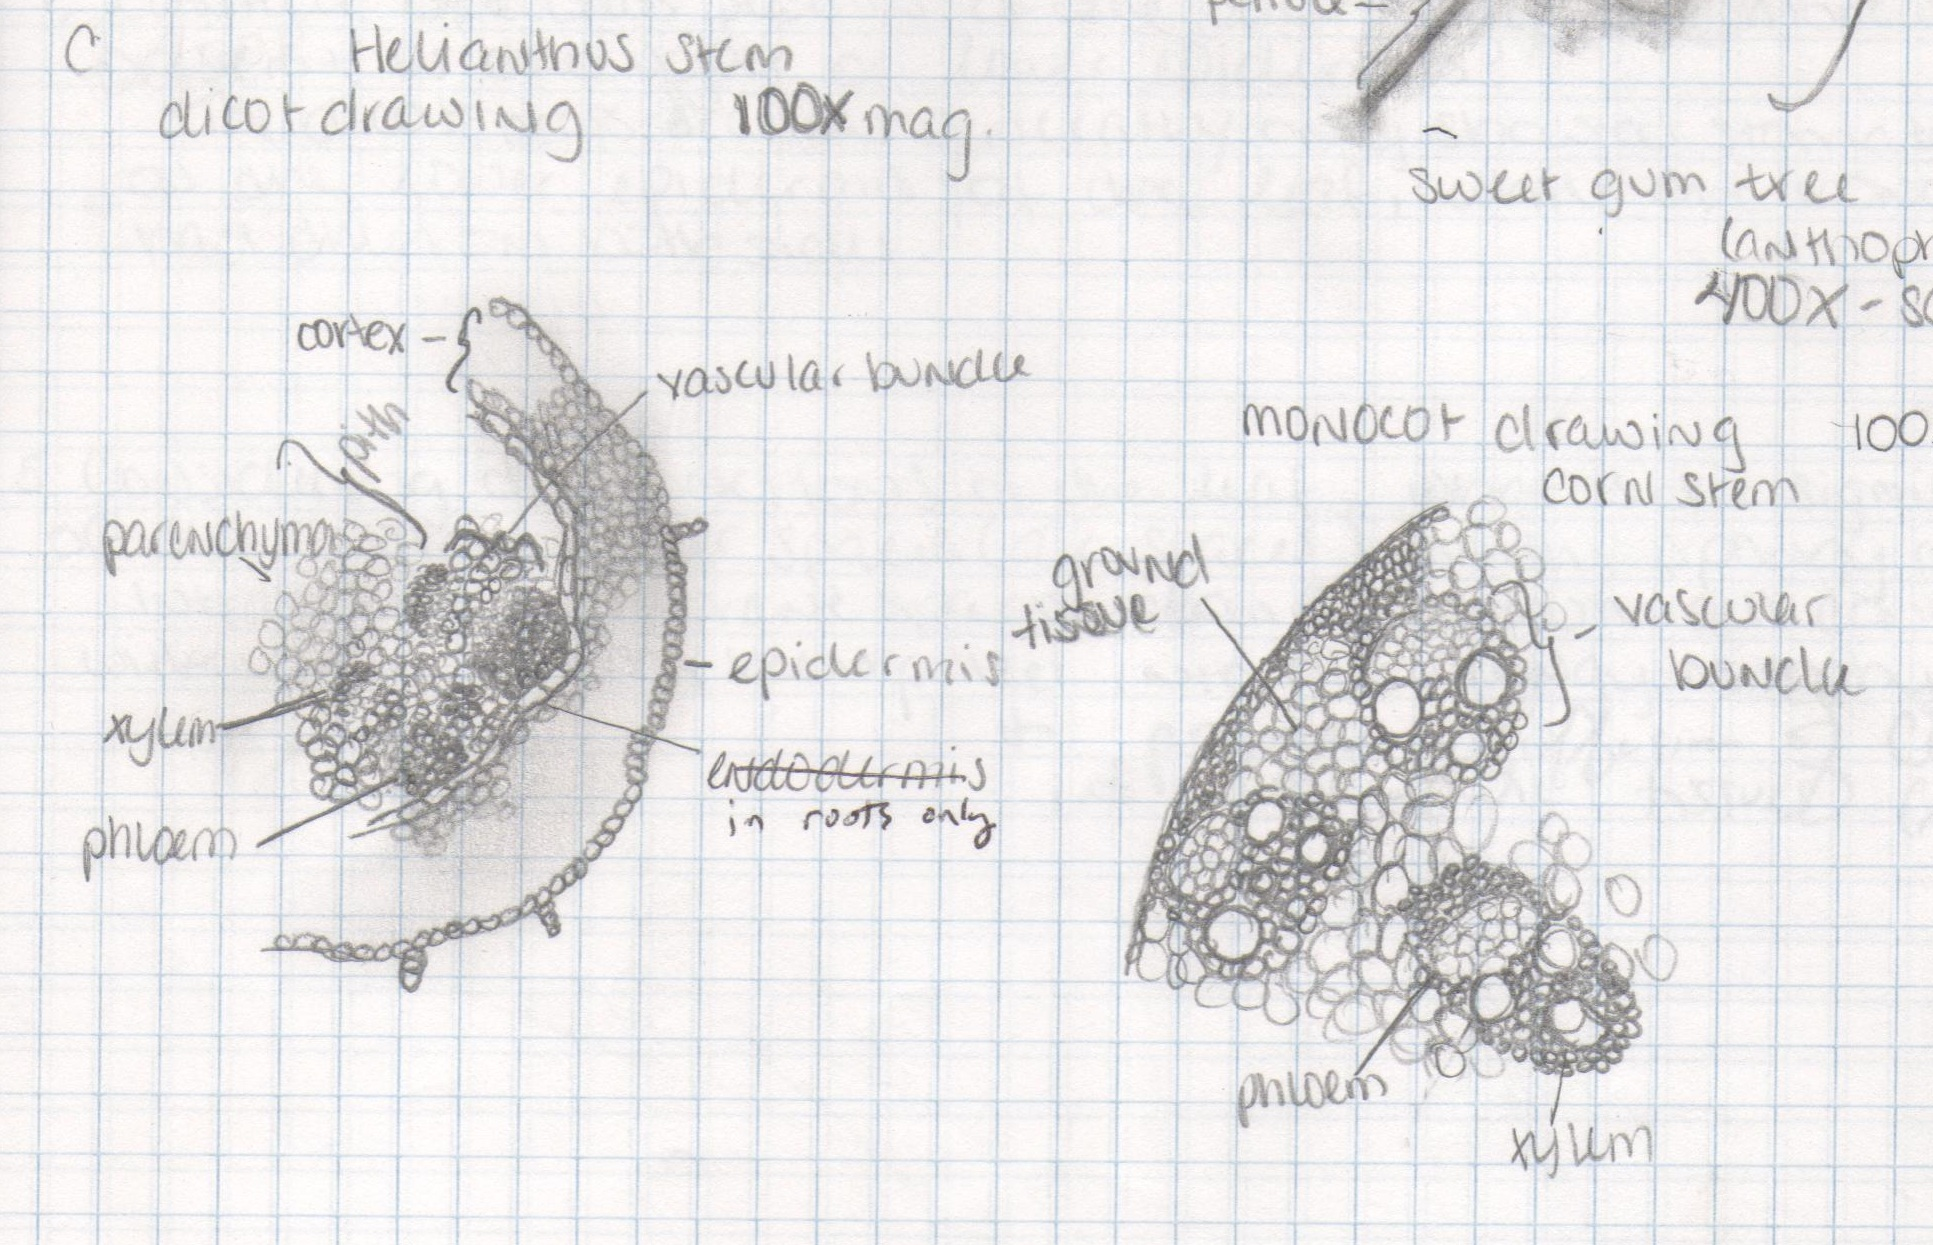 Cross Sections Monocot Versus Dicot Stems